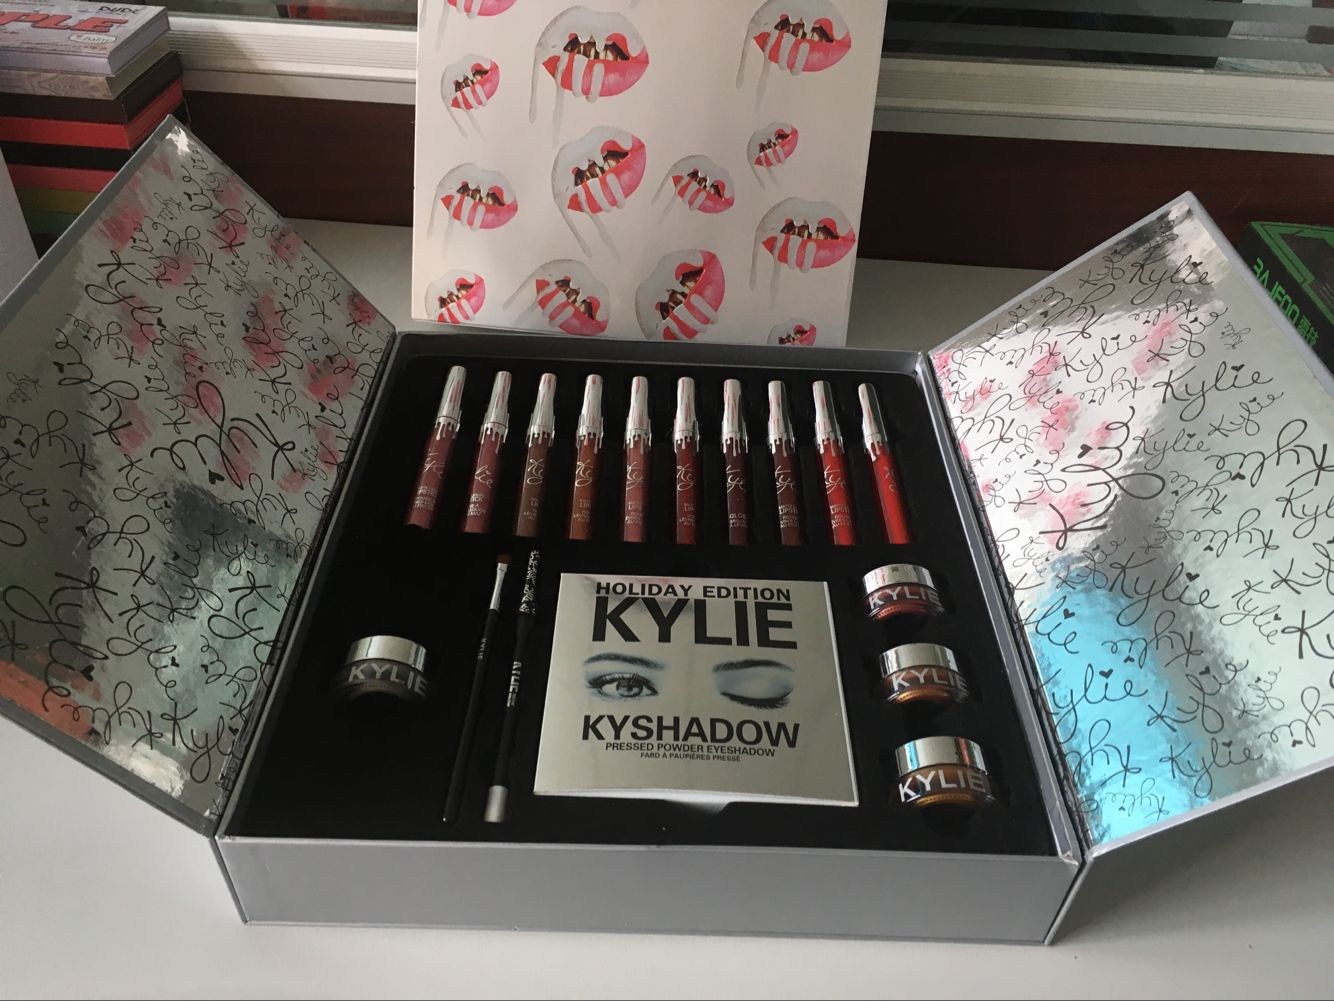 New Arrival Christmas Hot Sale Kylie Holiday Big Box 10 Colors Lipsticks Set